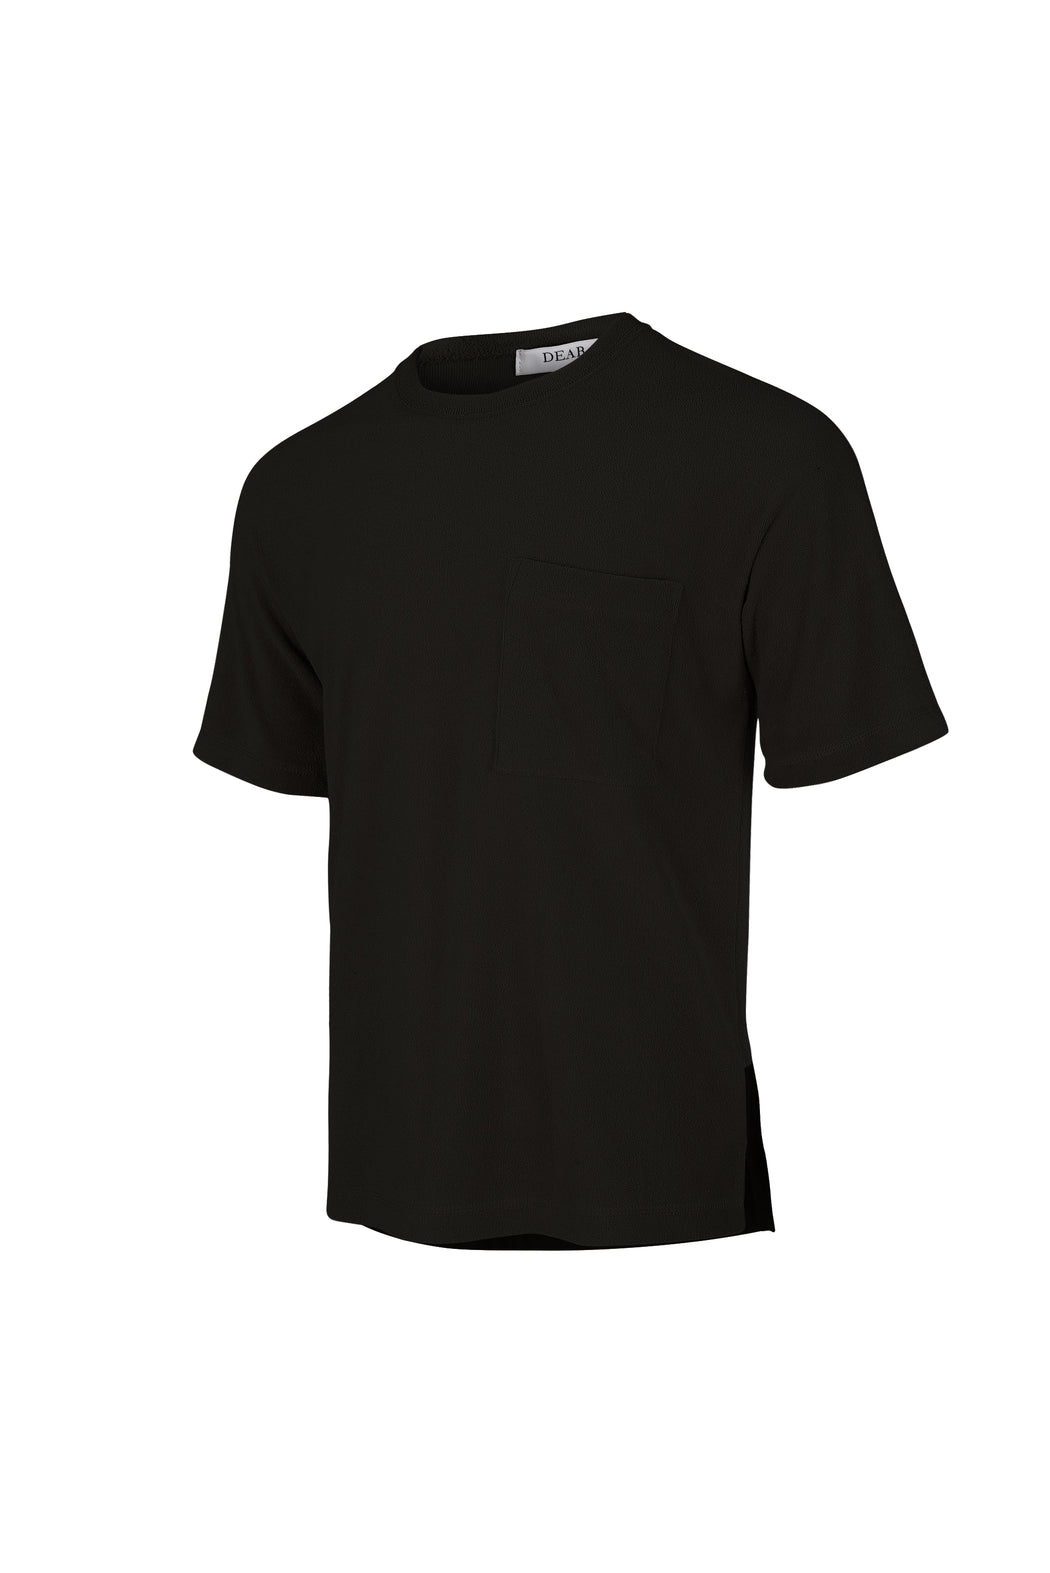 Side View of Men Pocket Blocked T-shirt, made with Supima Cotton in Black